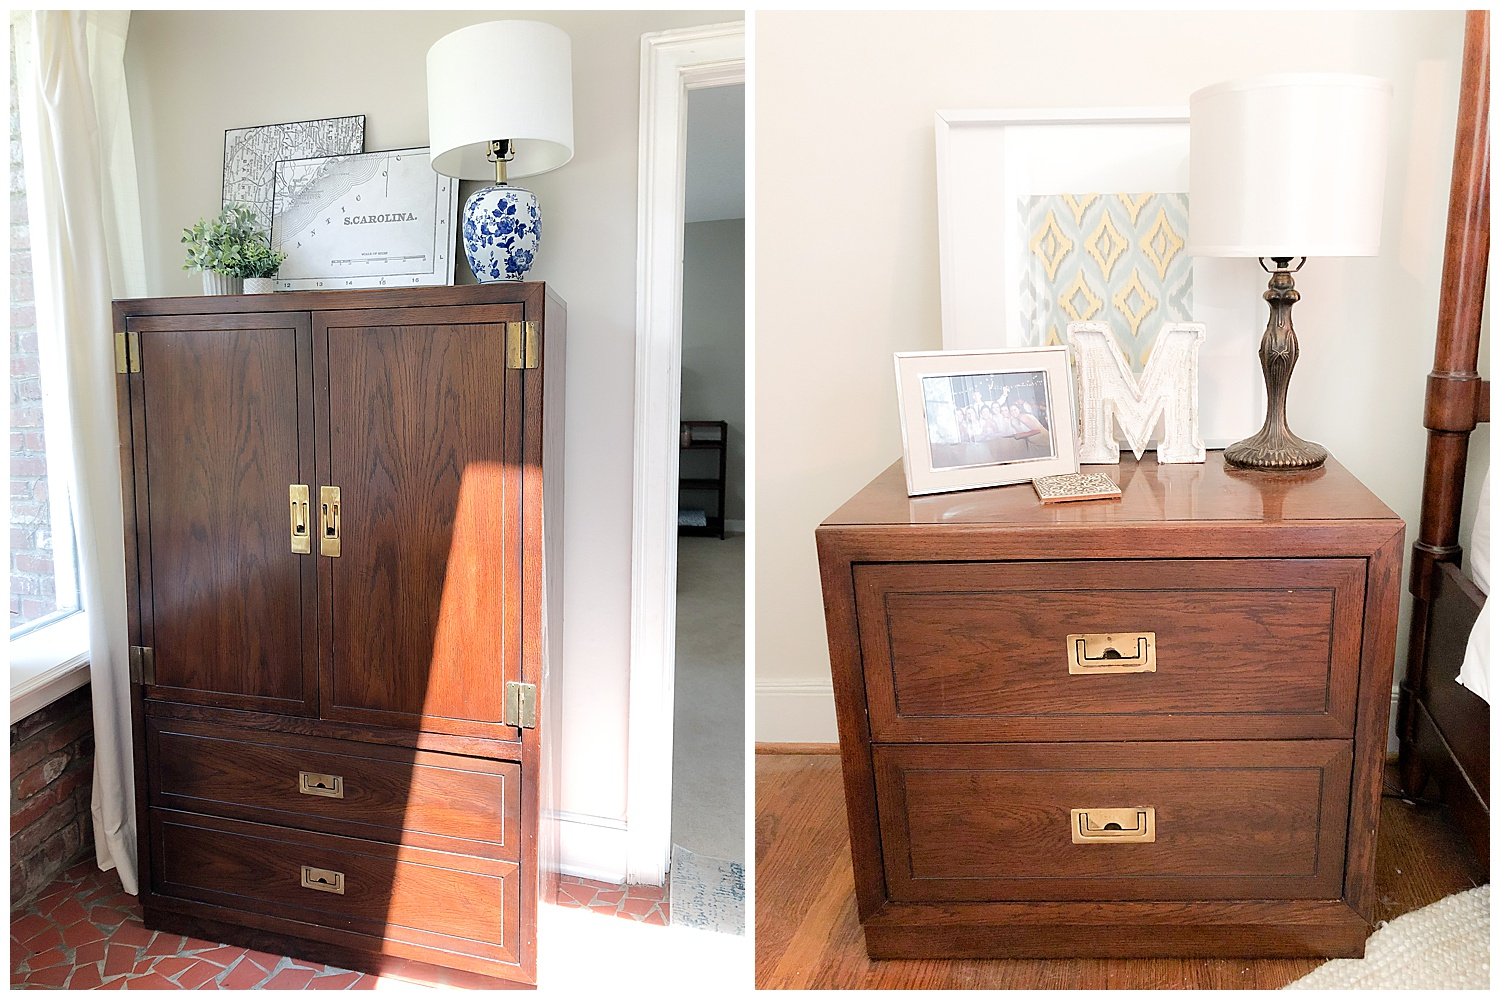 DIXIE ARMOIRE + 2 BEDSIDE TABLES: $150